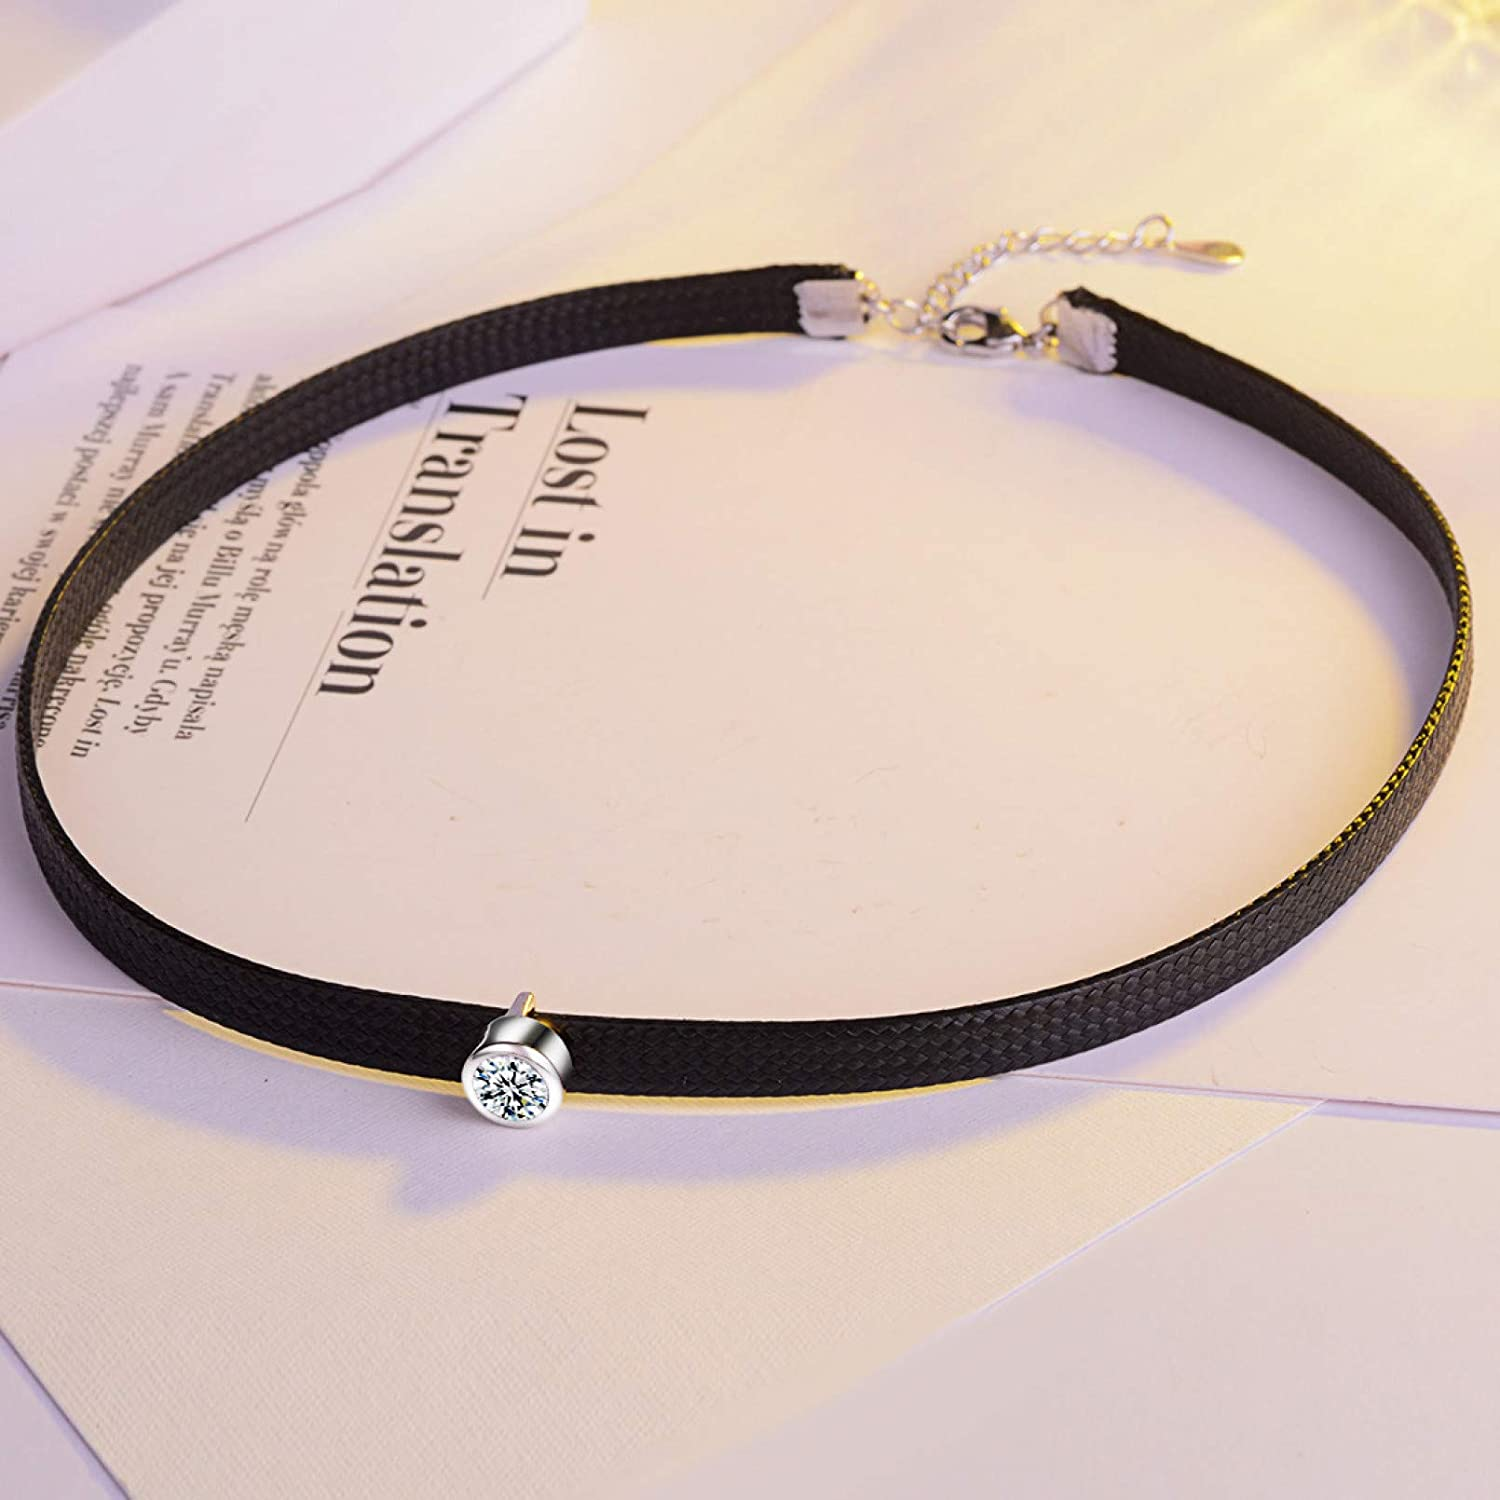 N/A Necklace Pendant Neck Chain Short Necklace Female Black Rope Diamond Clavicle Chain Necklace Collar Decoration Christmas Birthday Party Gifts